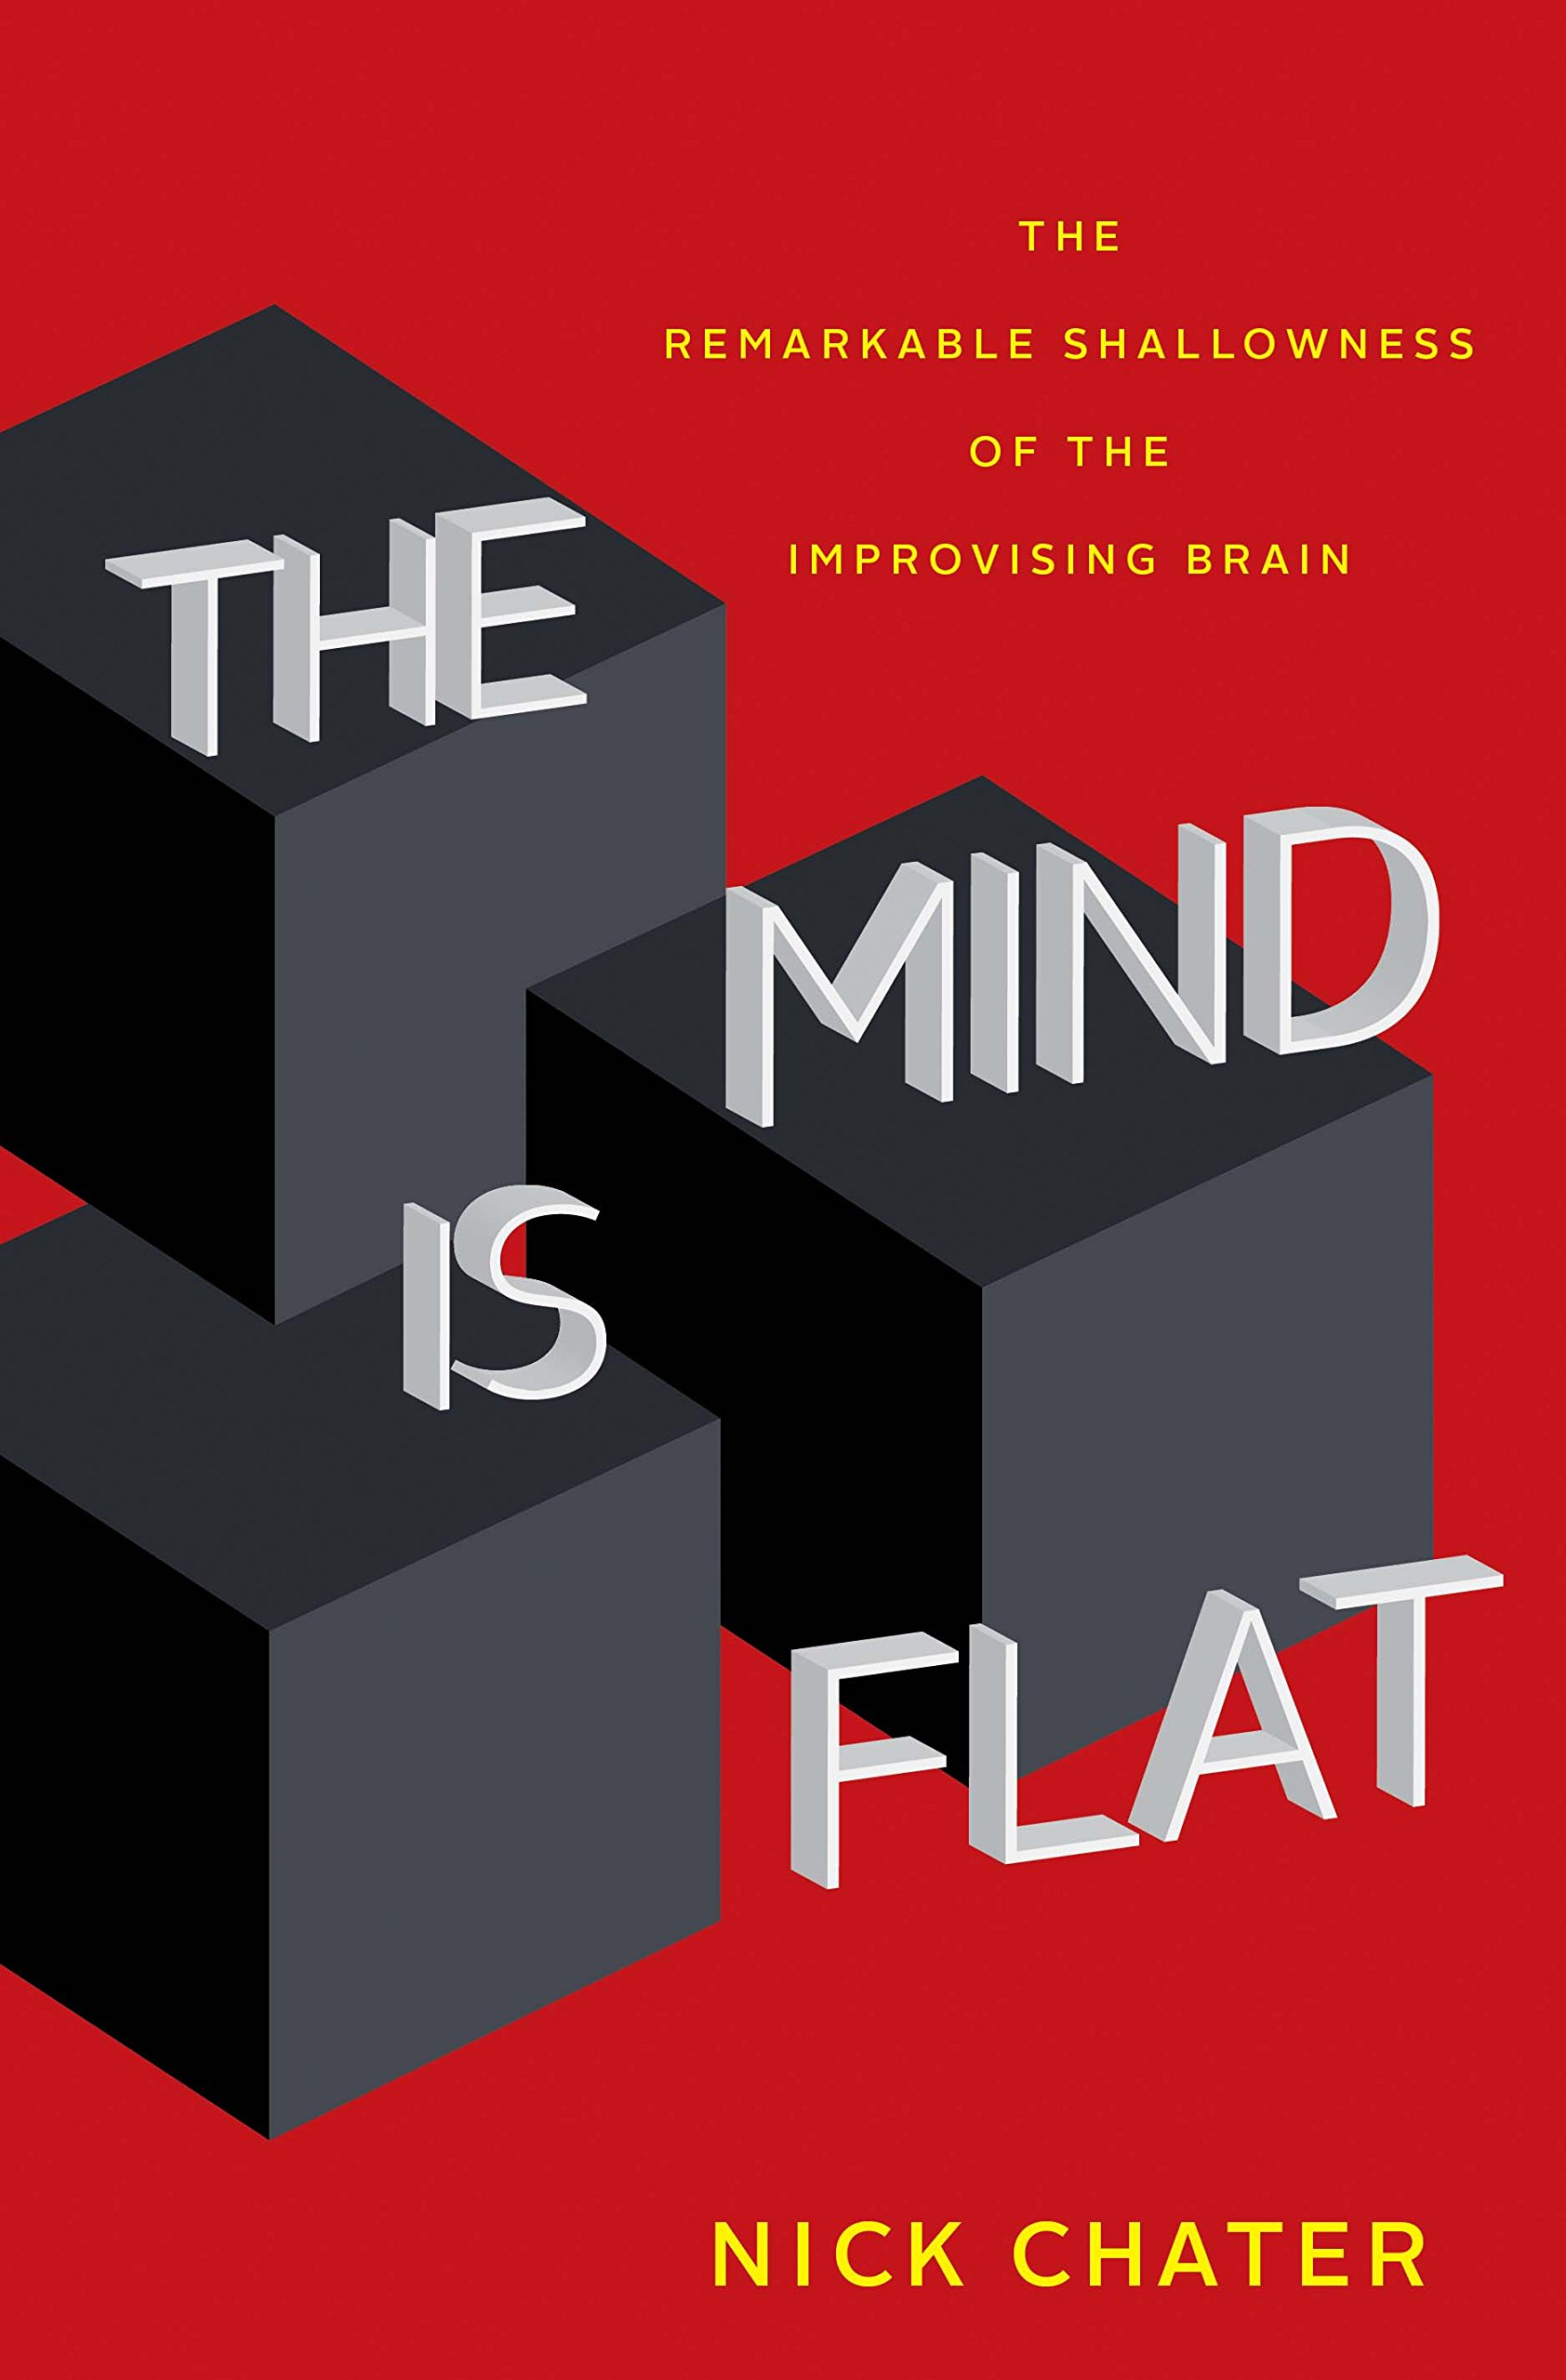 carlos velo nick chatter the mind is flat